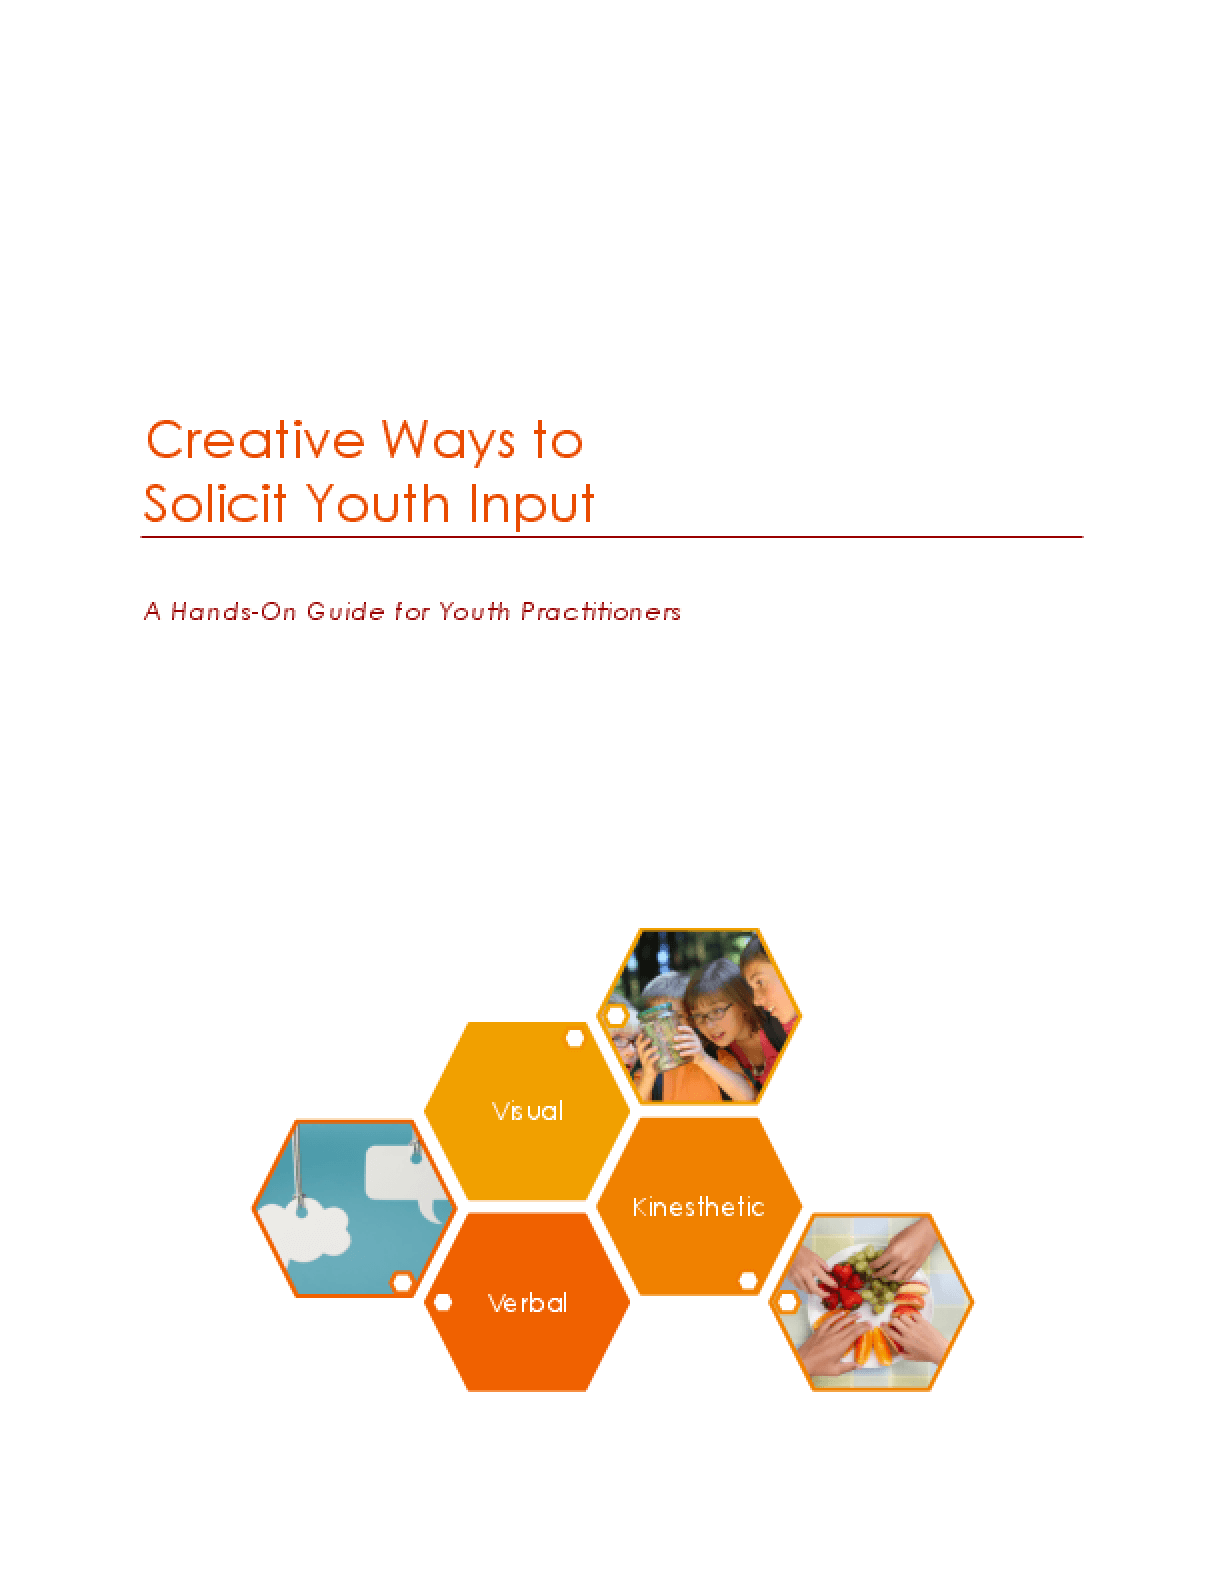 Creative Ways to Solicit Youth Input: A Hands-On Guide for Youth Practitioners